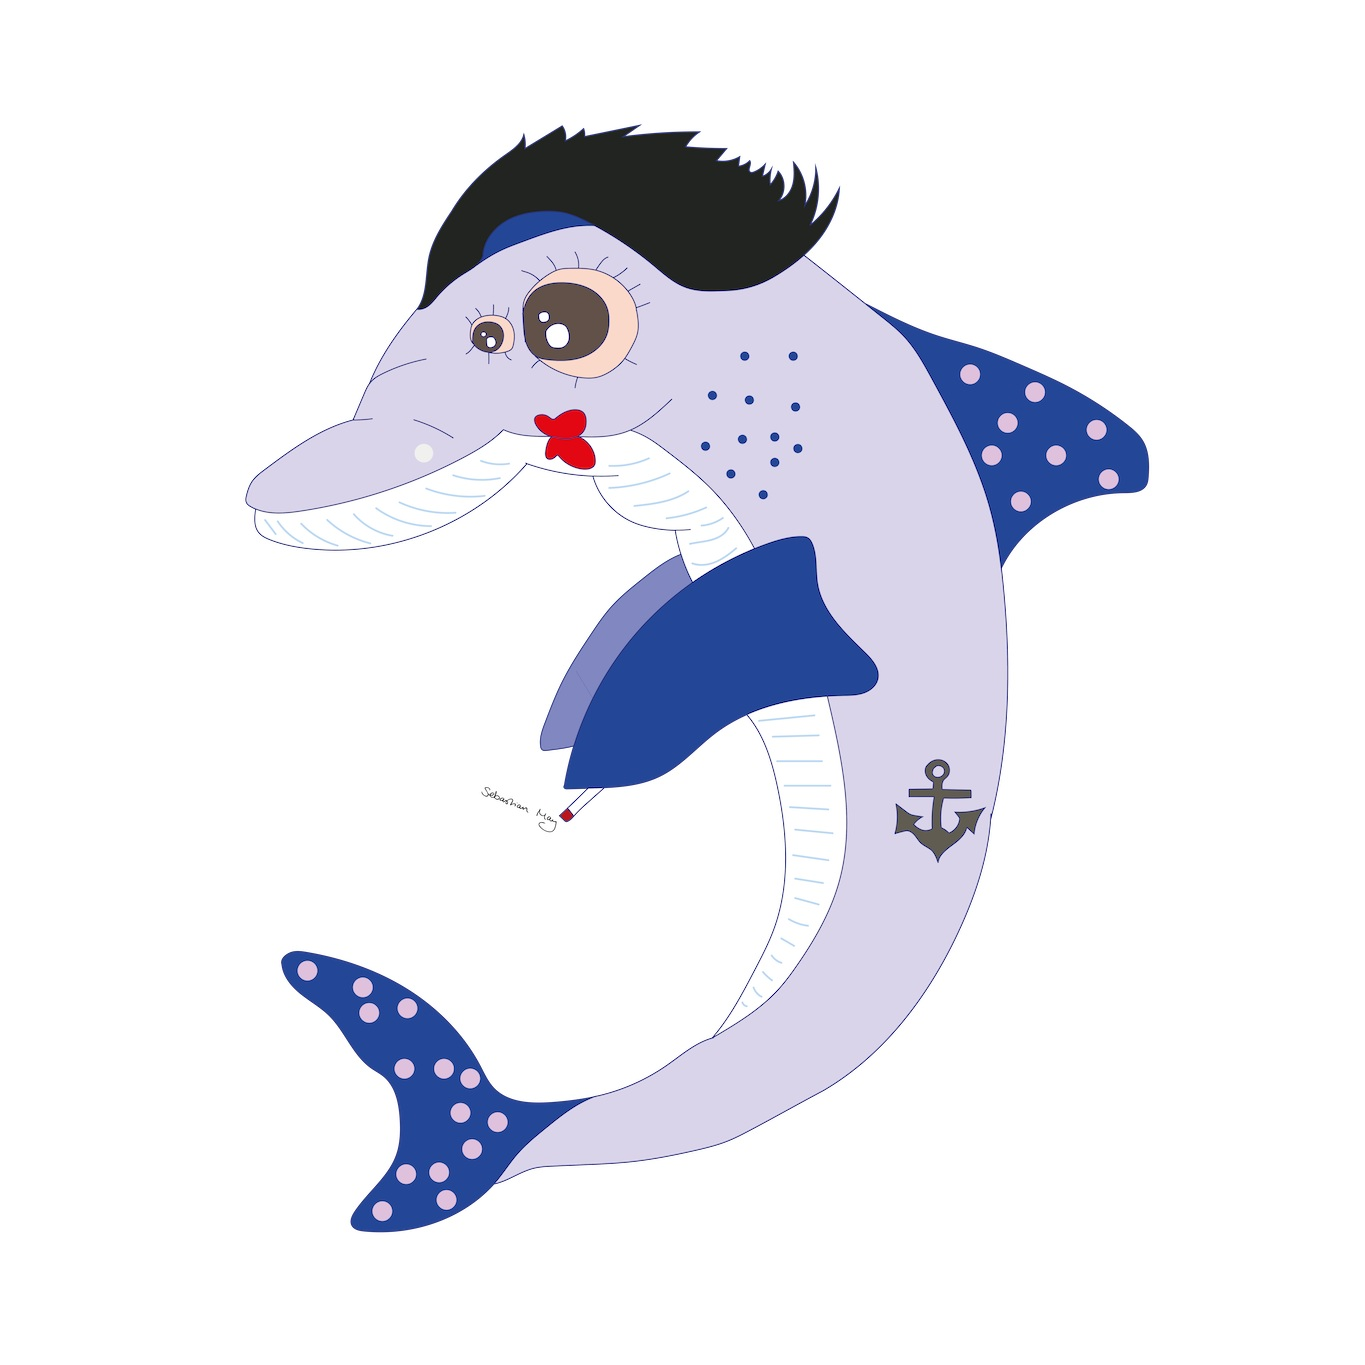 Dee the Dolphin  2017 Digital illustration 12000 px x 12000 px  More information